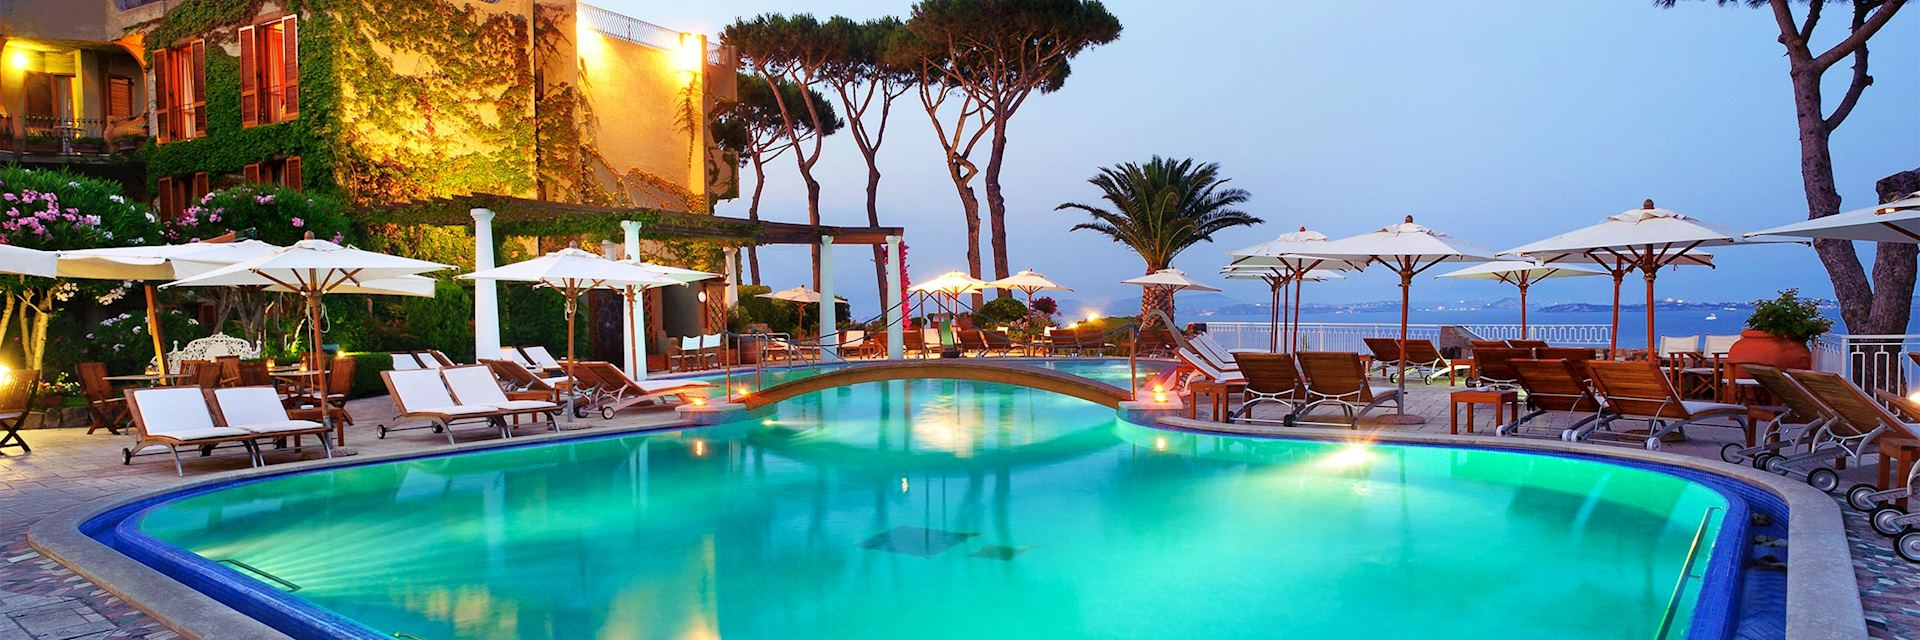 San Montano Resort & Spa, Ischia